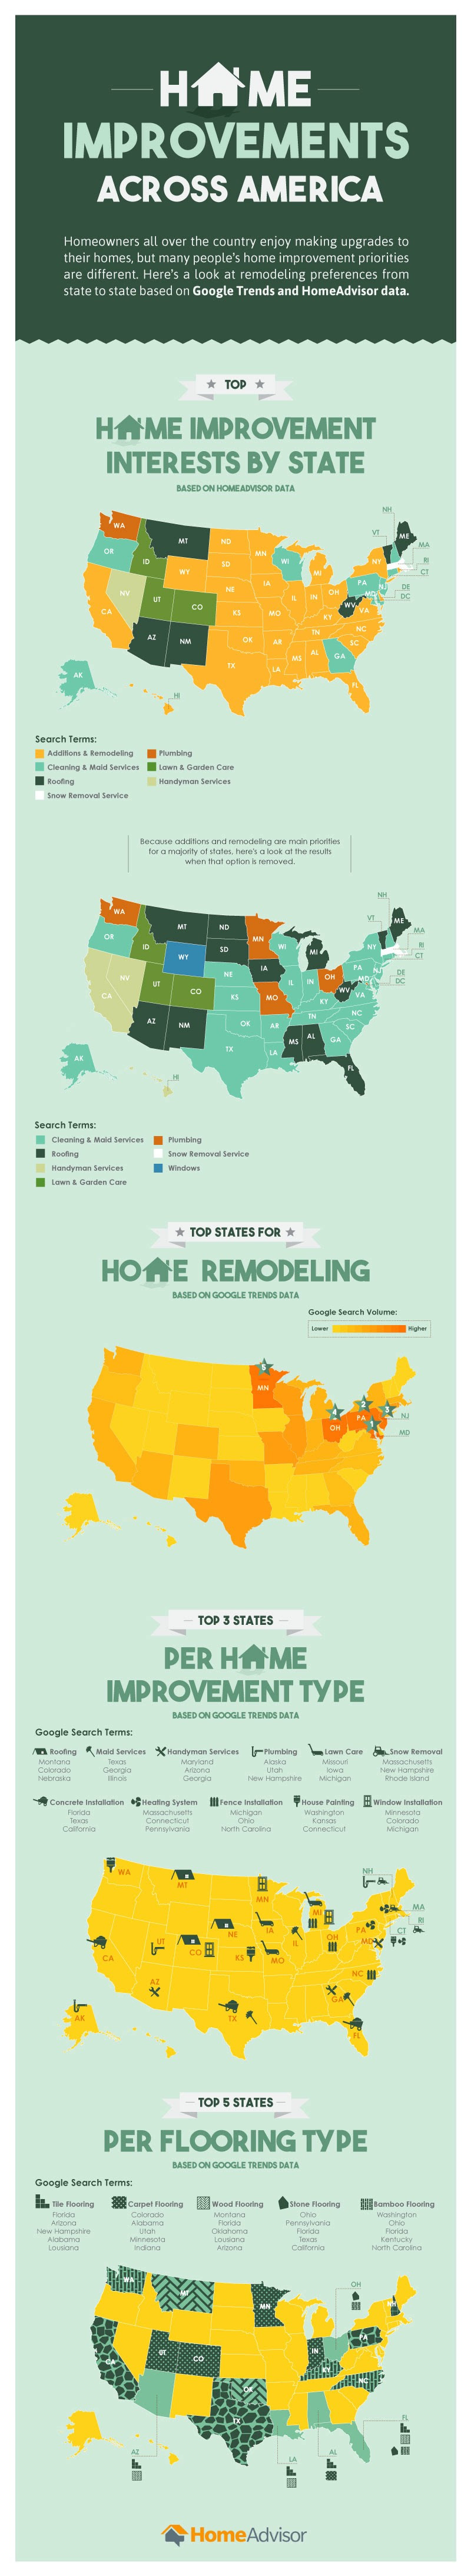 Home Improvement Trends in the US - State by State